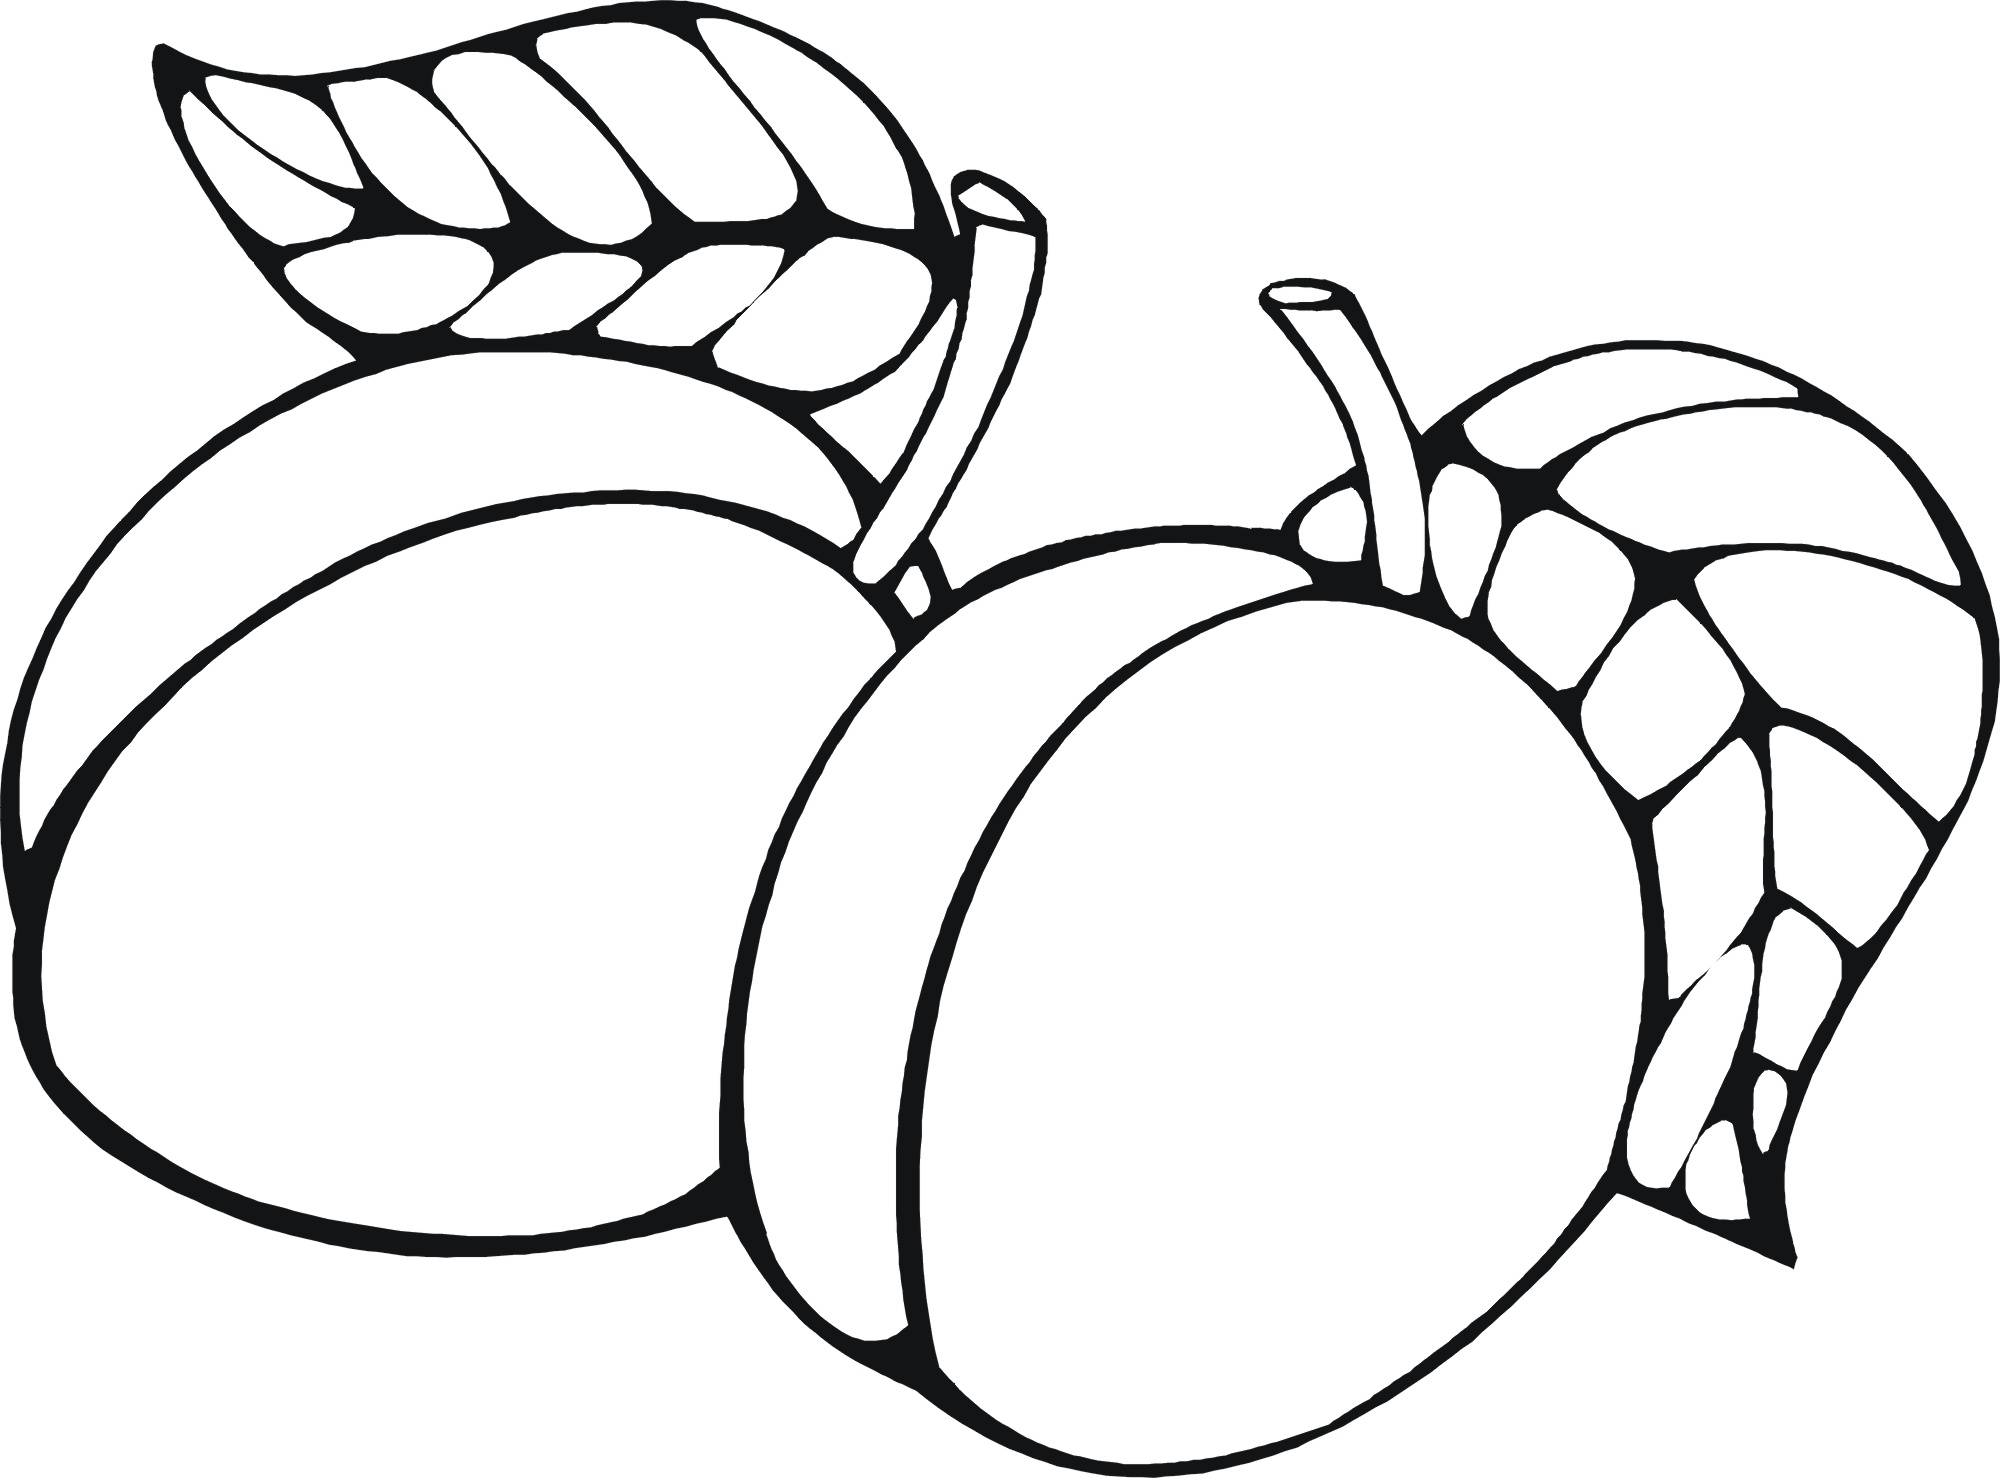 Peach clipart coloring Pages bats Pages Children's Food